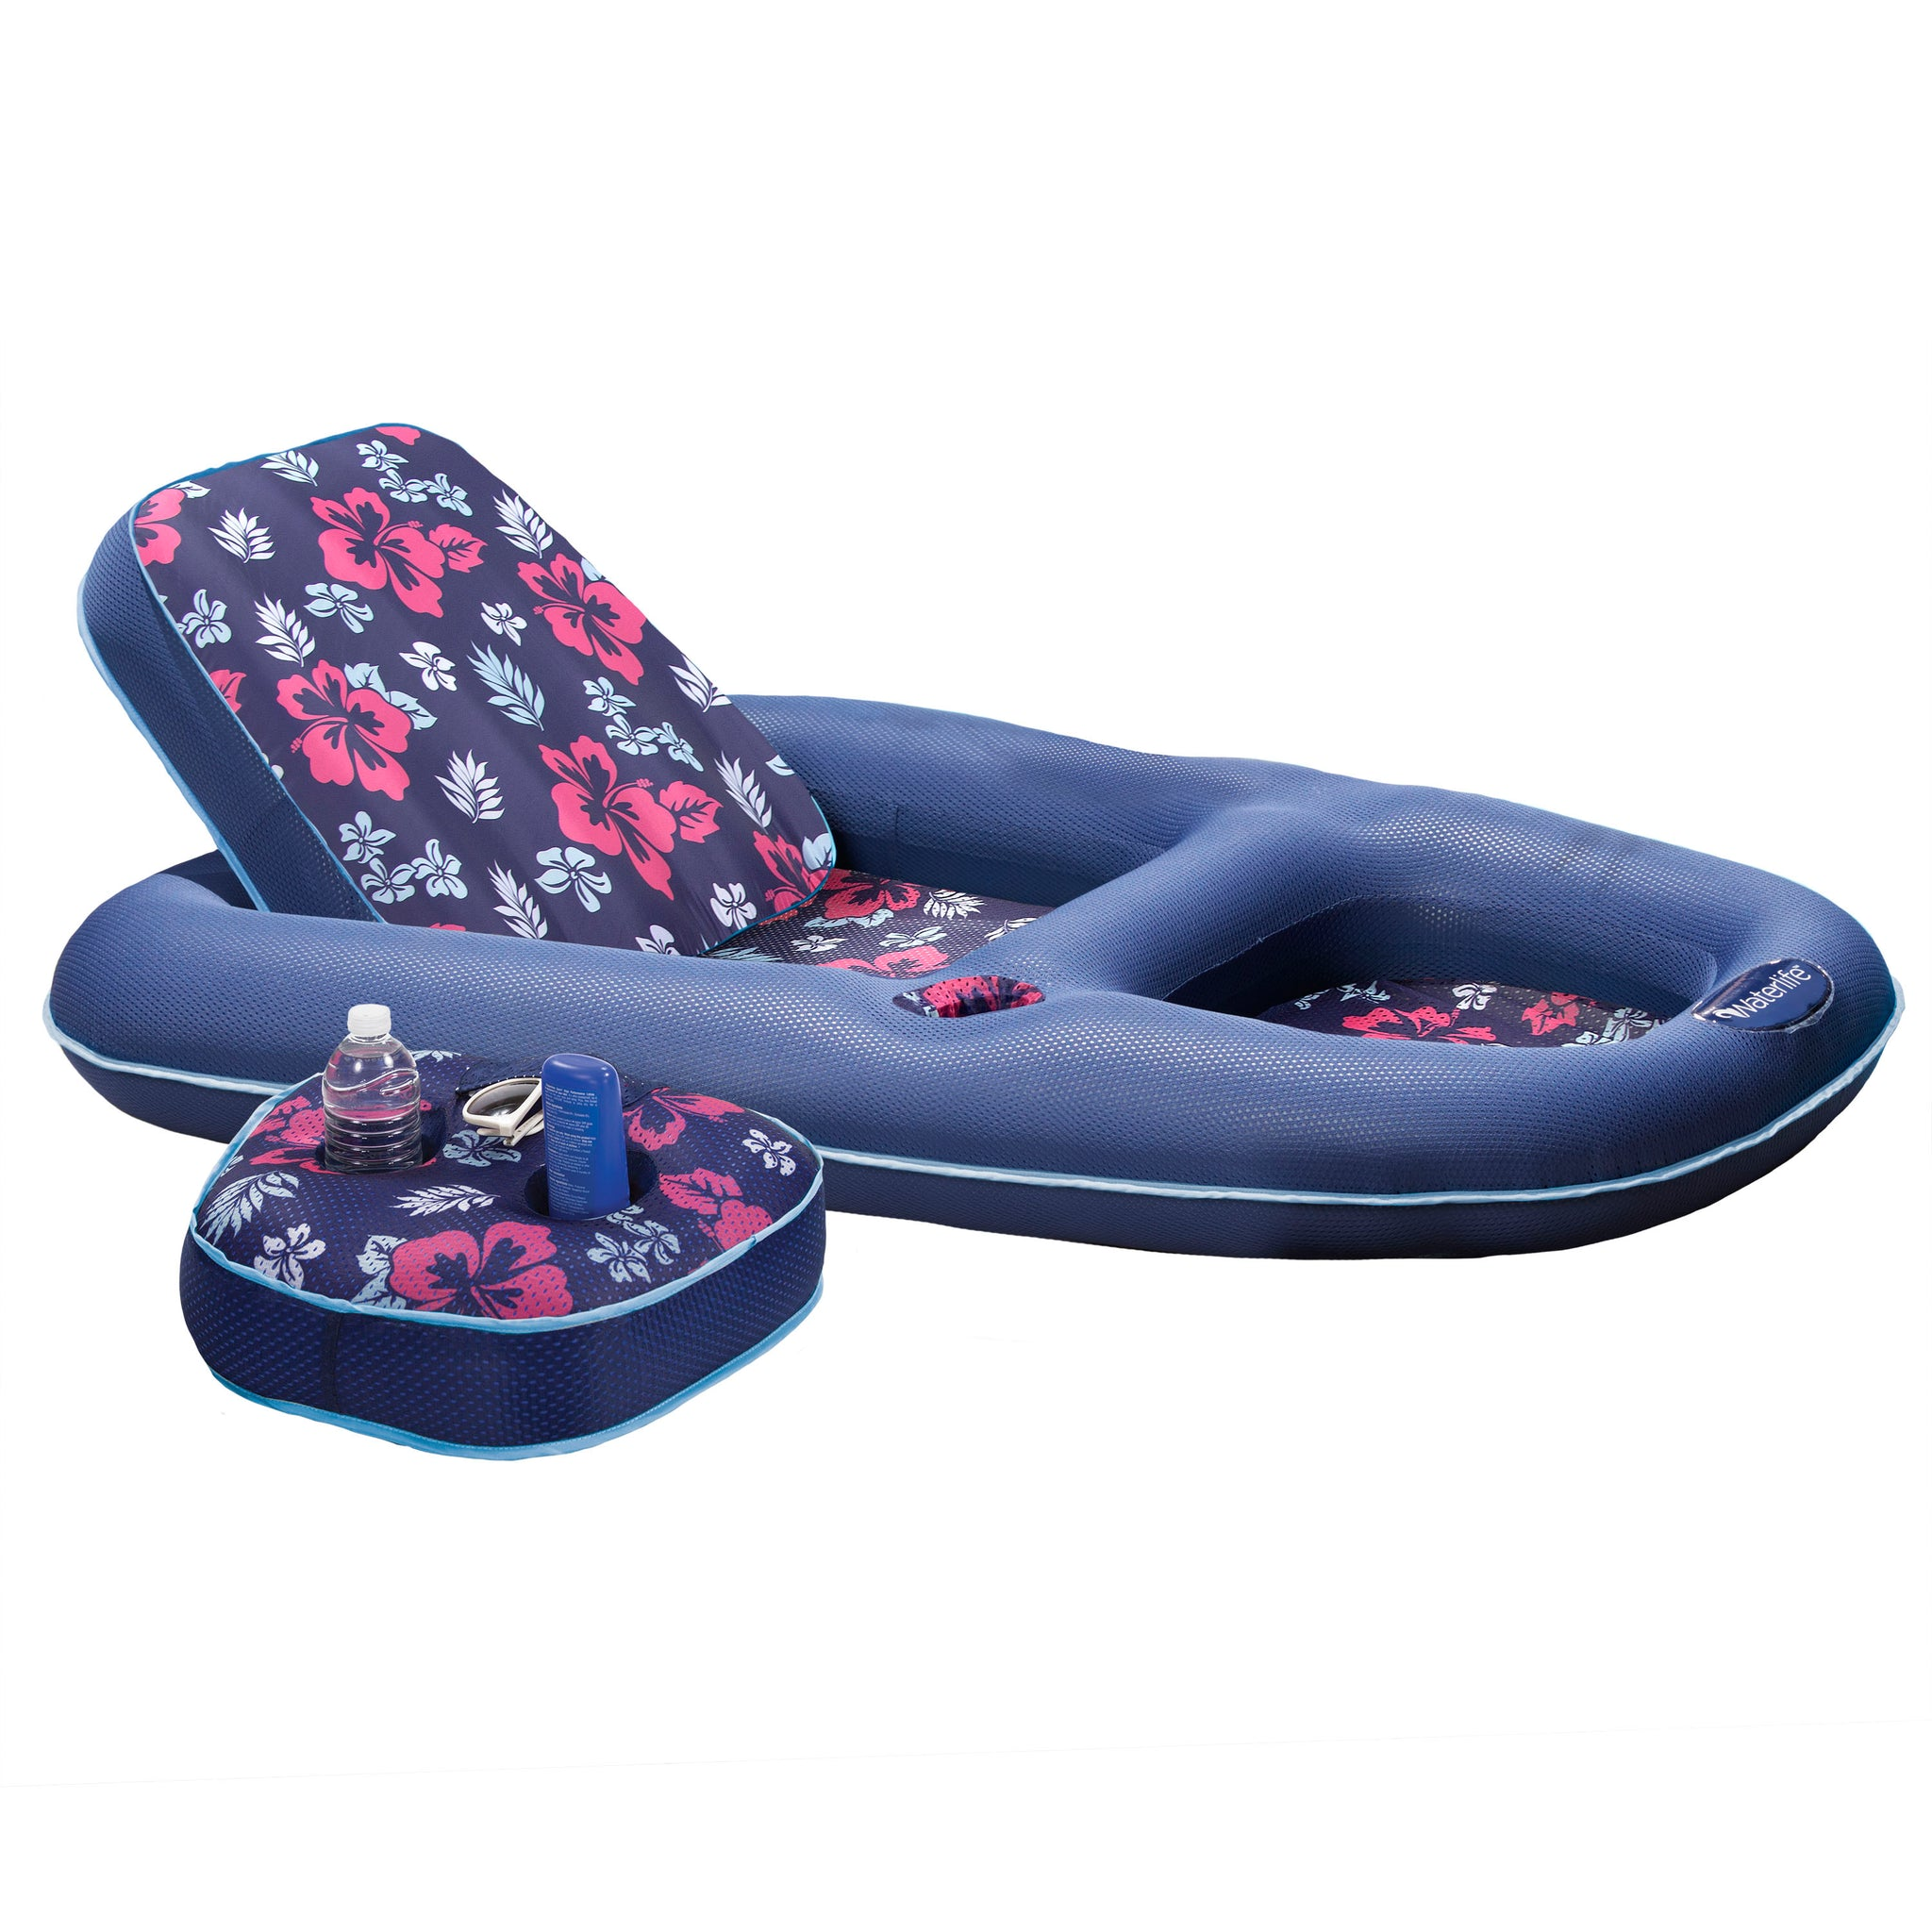 Ultimate 2-in-1 Lounge & Caddy - Hibiscus Print